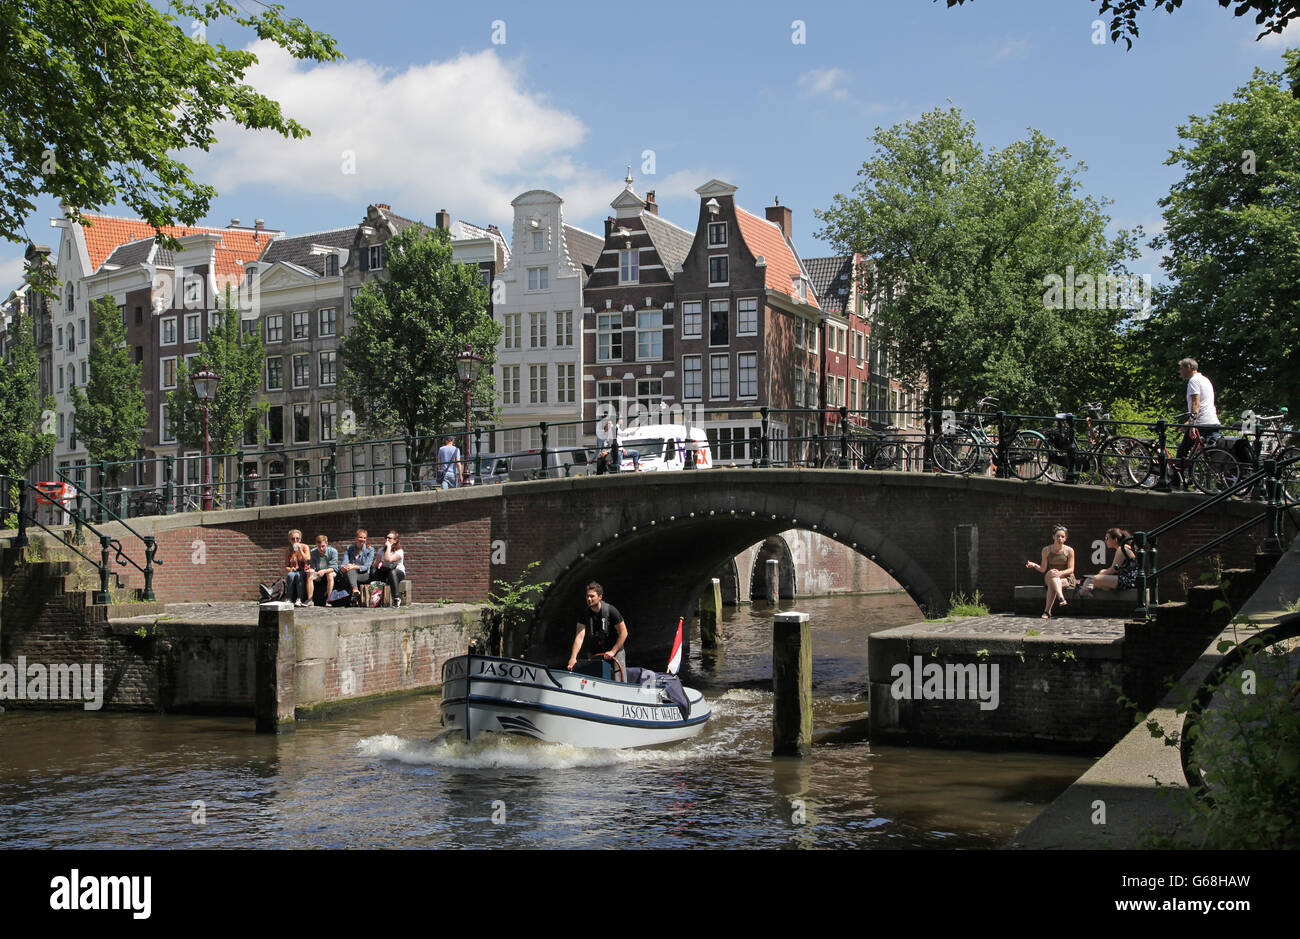 Amsterdam canal cruise Photo Stock